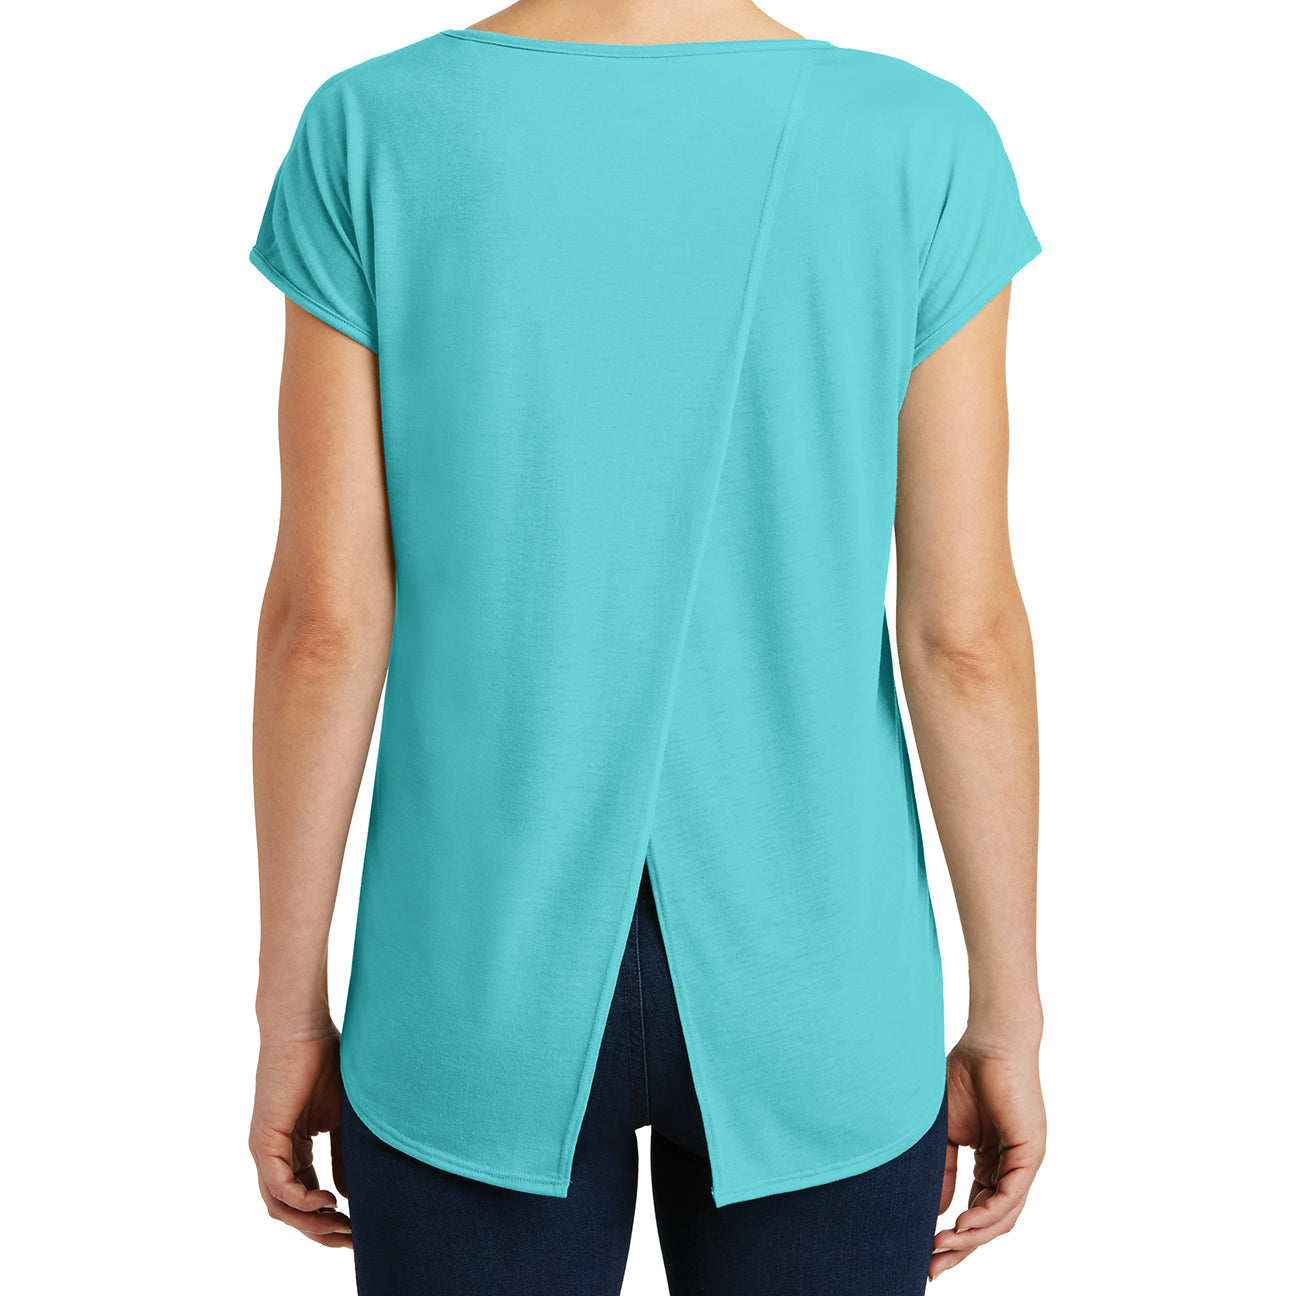 Womens Drapey Cross-Back Tee - Aqua Ice - Back